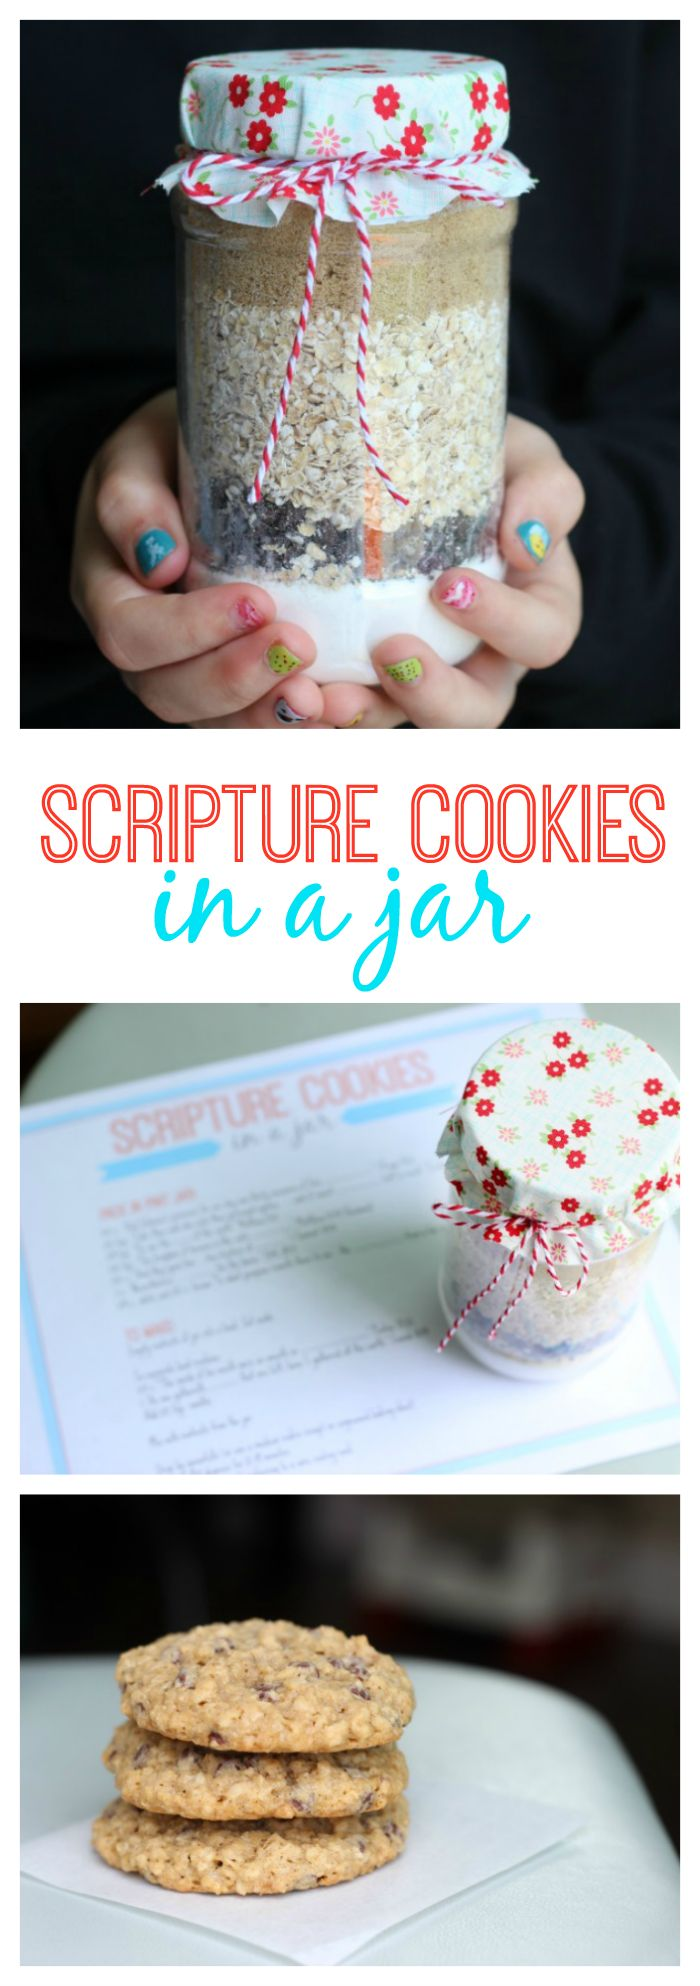 A fun young women's activity and treat all in one! Scripture cookies in a jar. Search scripture verses to find the ingredients. Pack into a jar and send home with each girl to make for her family! Would make a fun family home activity as well.  I work with the 12 and 13 year old teenage girls in our church's youth group. The girls are so sweet and adorable at that age! We meet on Tuesday nights for youth group activities. I needed to come up with an activity the week that we were movi...